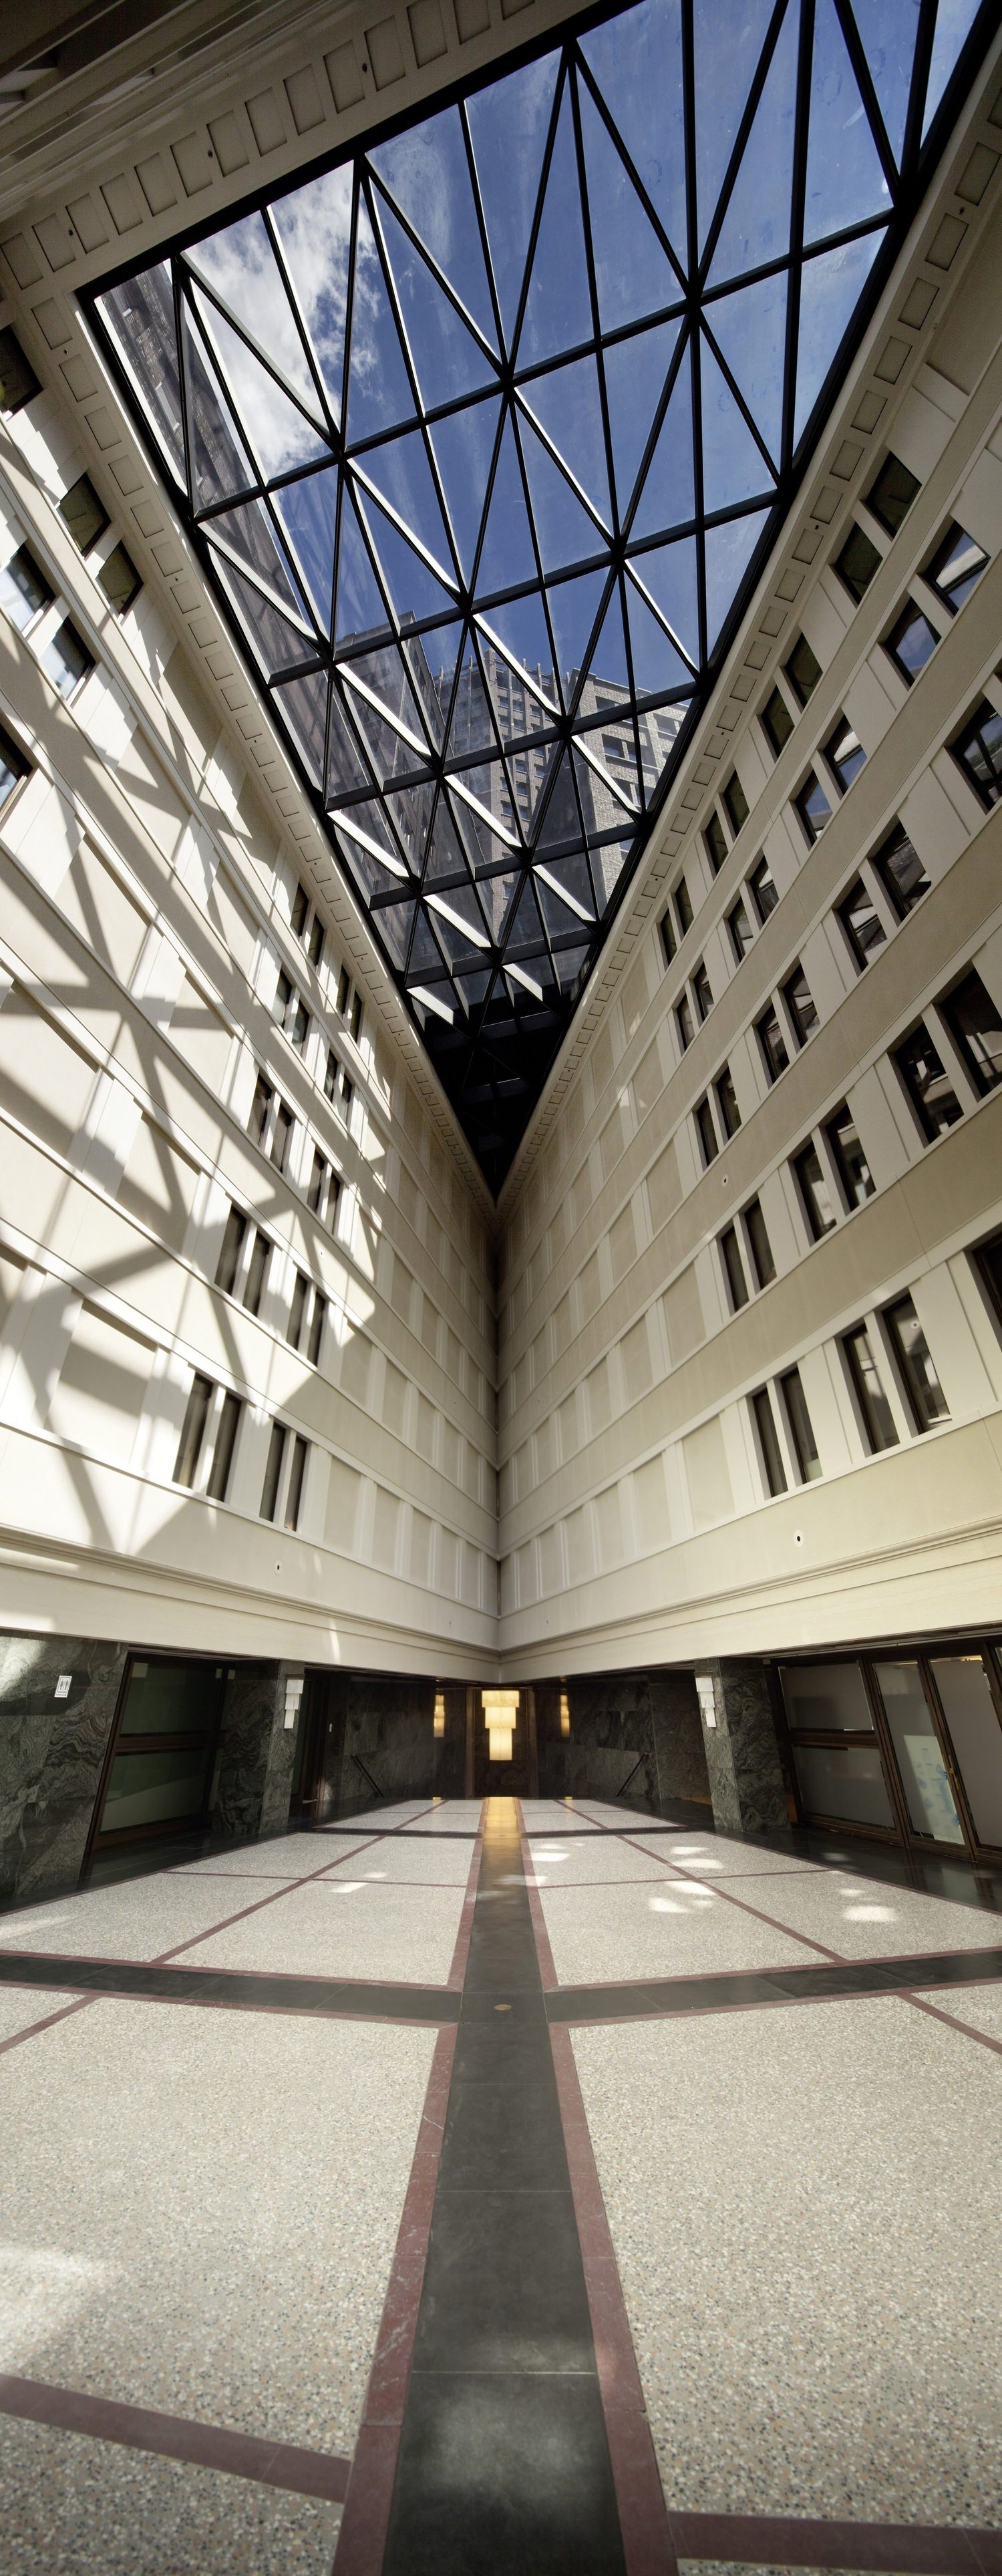 A courtyard inside of a building that has a glass skylight on the top of it and windows.